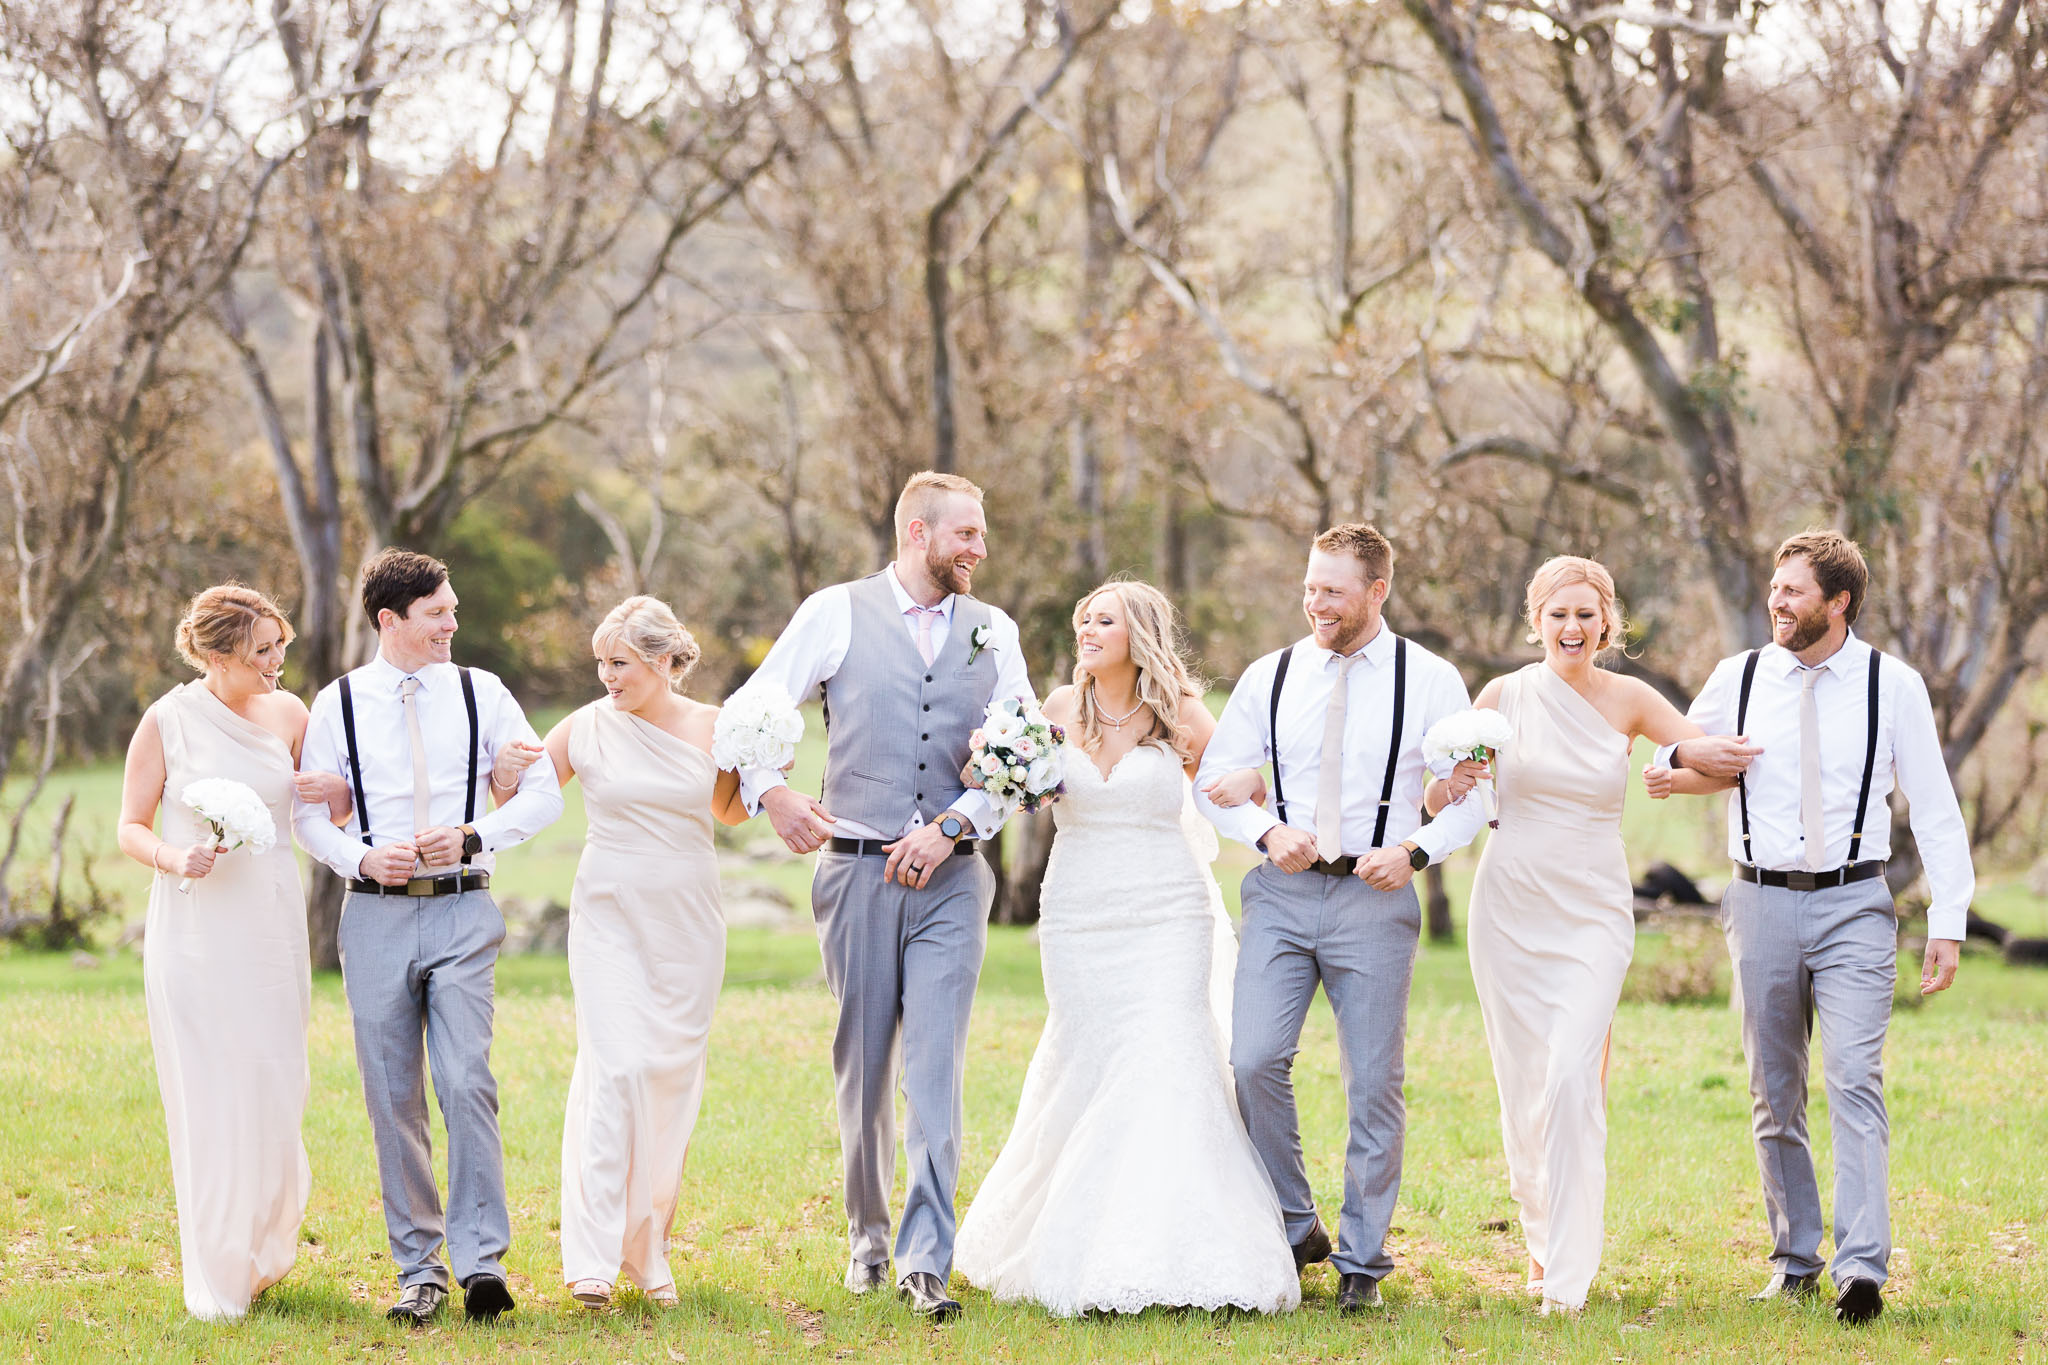 Bridal Party Walking - Gold Creek Station Small Wedding